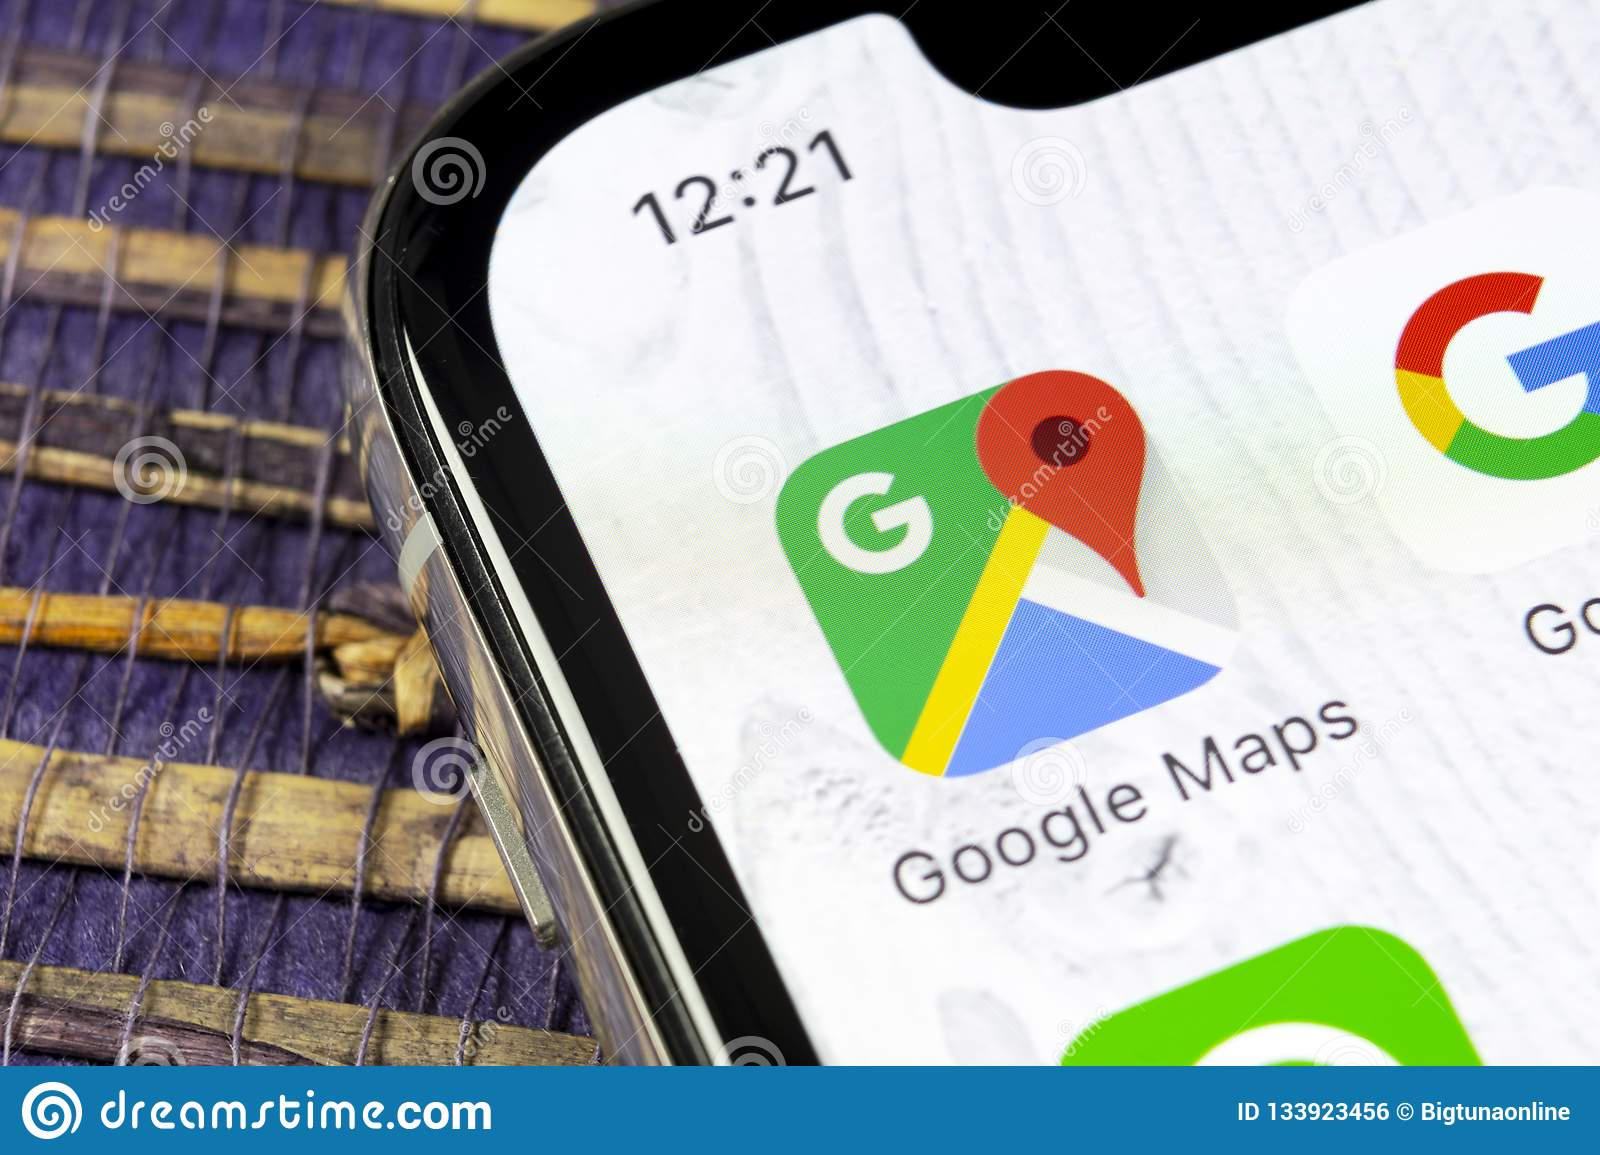 Google Maps application icon on Apple iPhone X screen close-up. Google Maps icon. Google maps application. Social media network